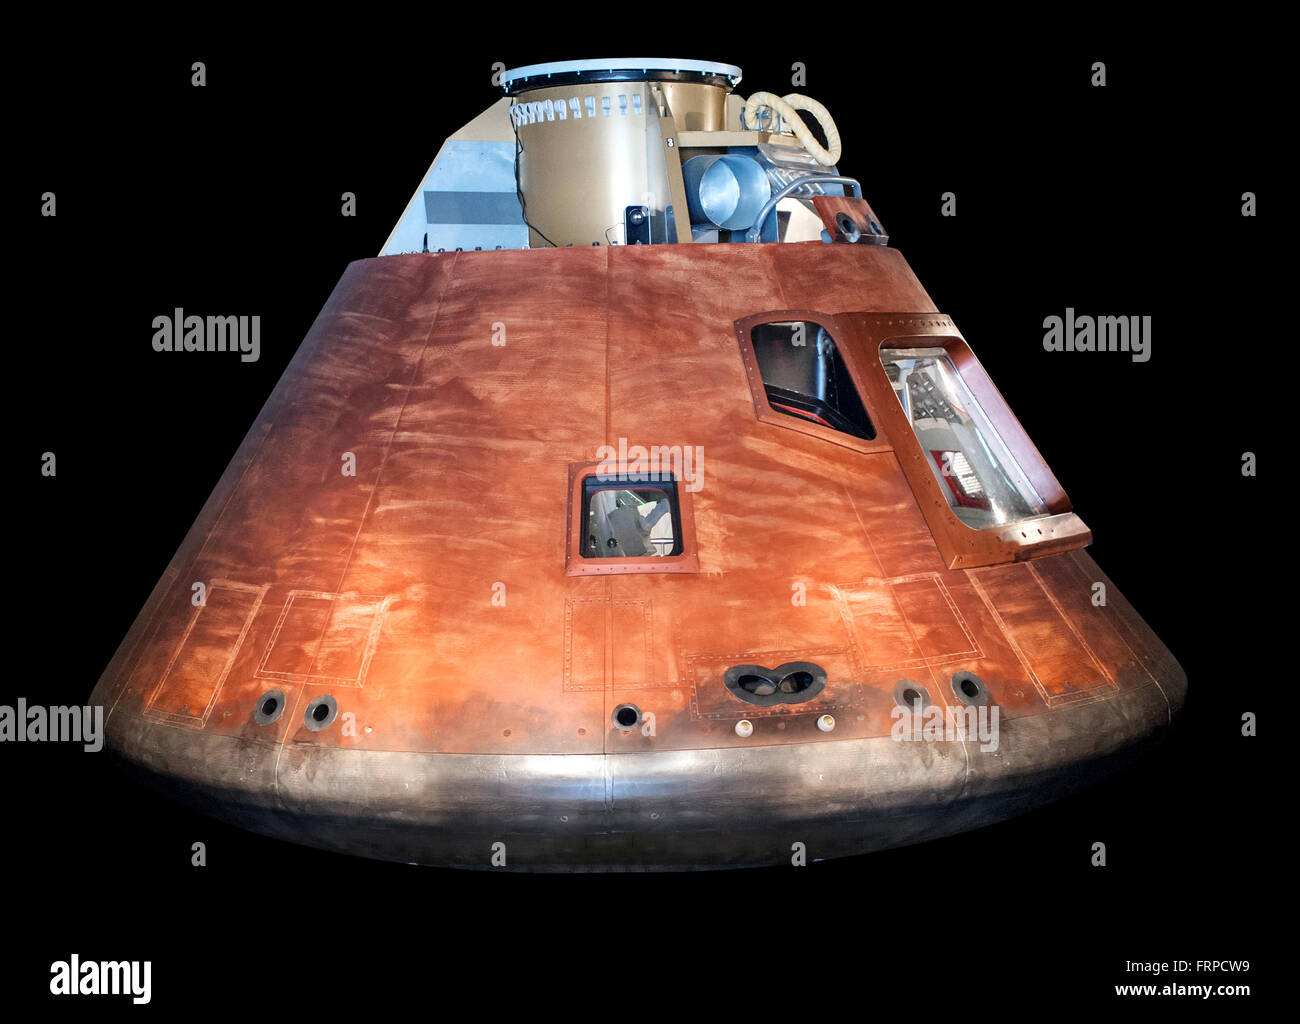 Side view of single Apollo rocket module on display over black background on display in museum - Stock Image